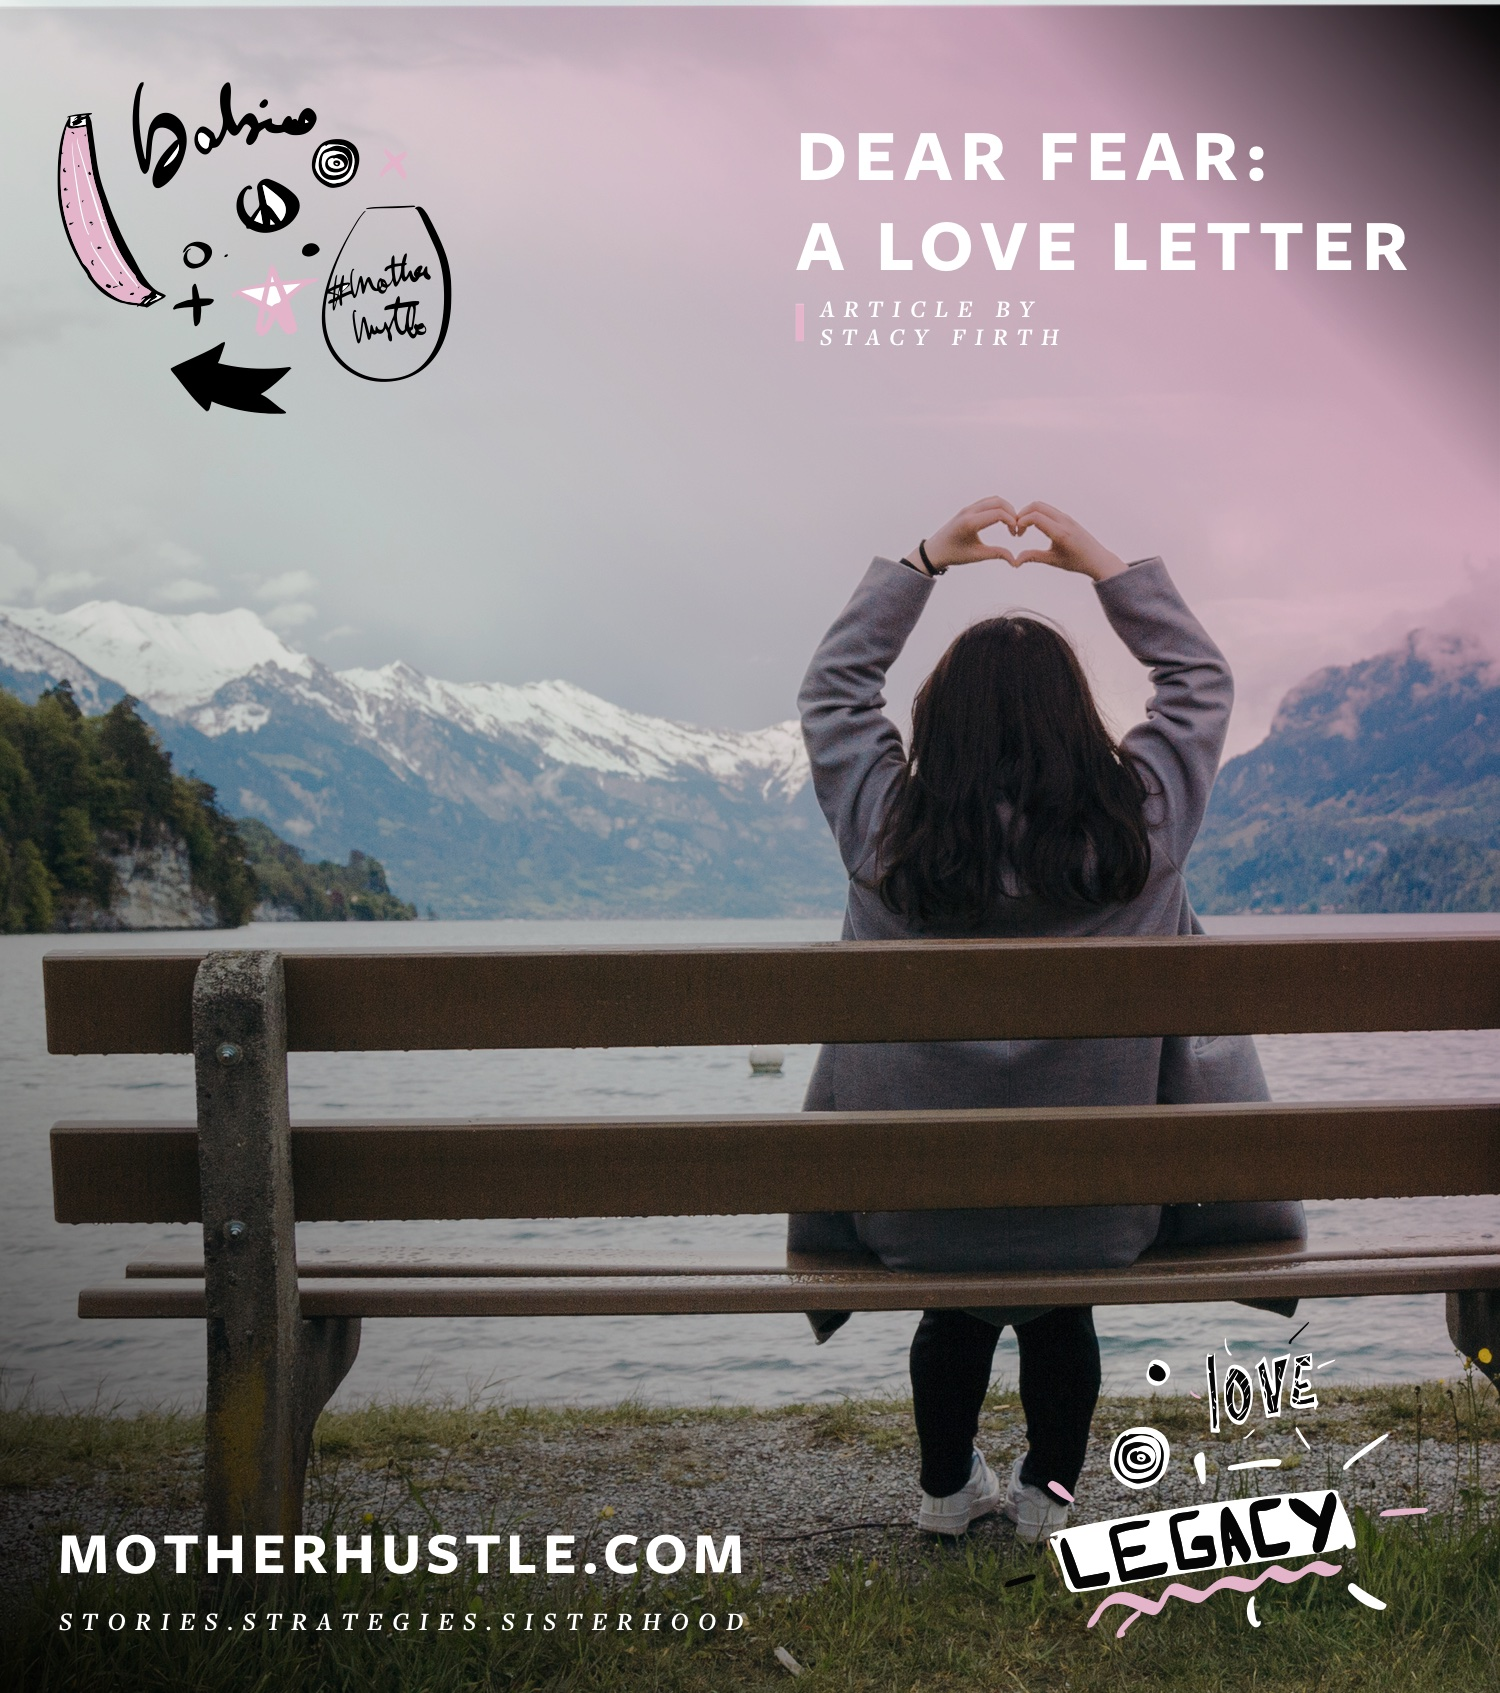 Dear Fear- A Love Letter - by Stacy Firth for MotherHustle